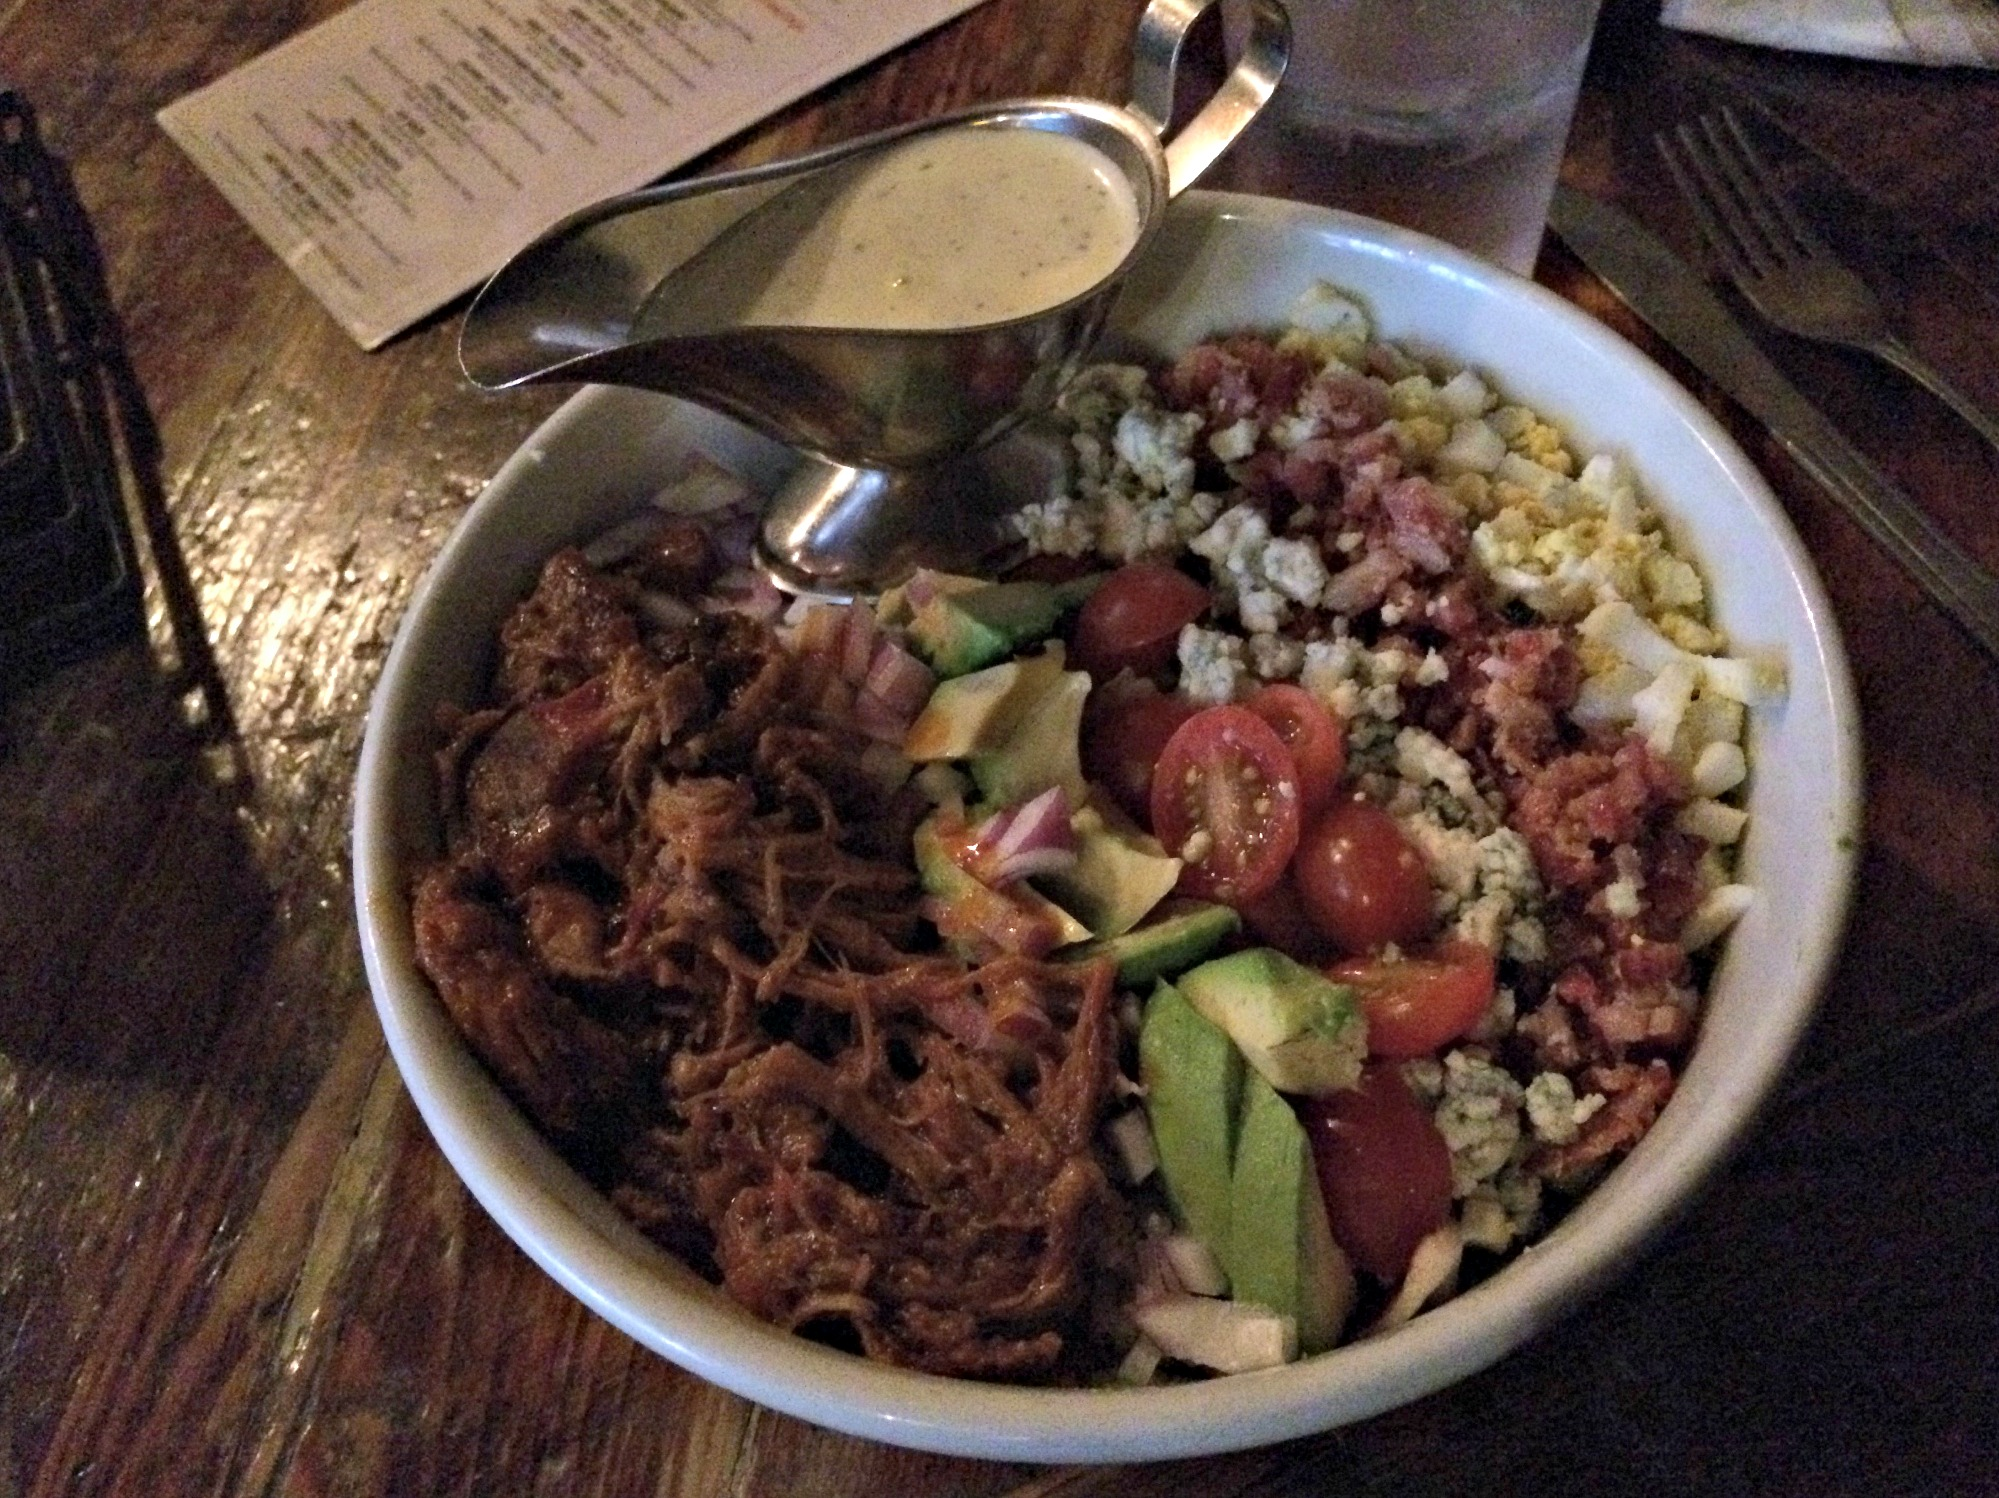 southern hospitality not-so cobb salad